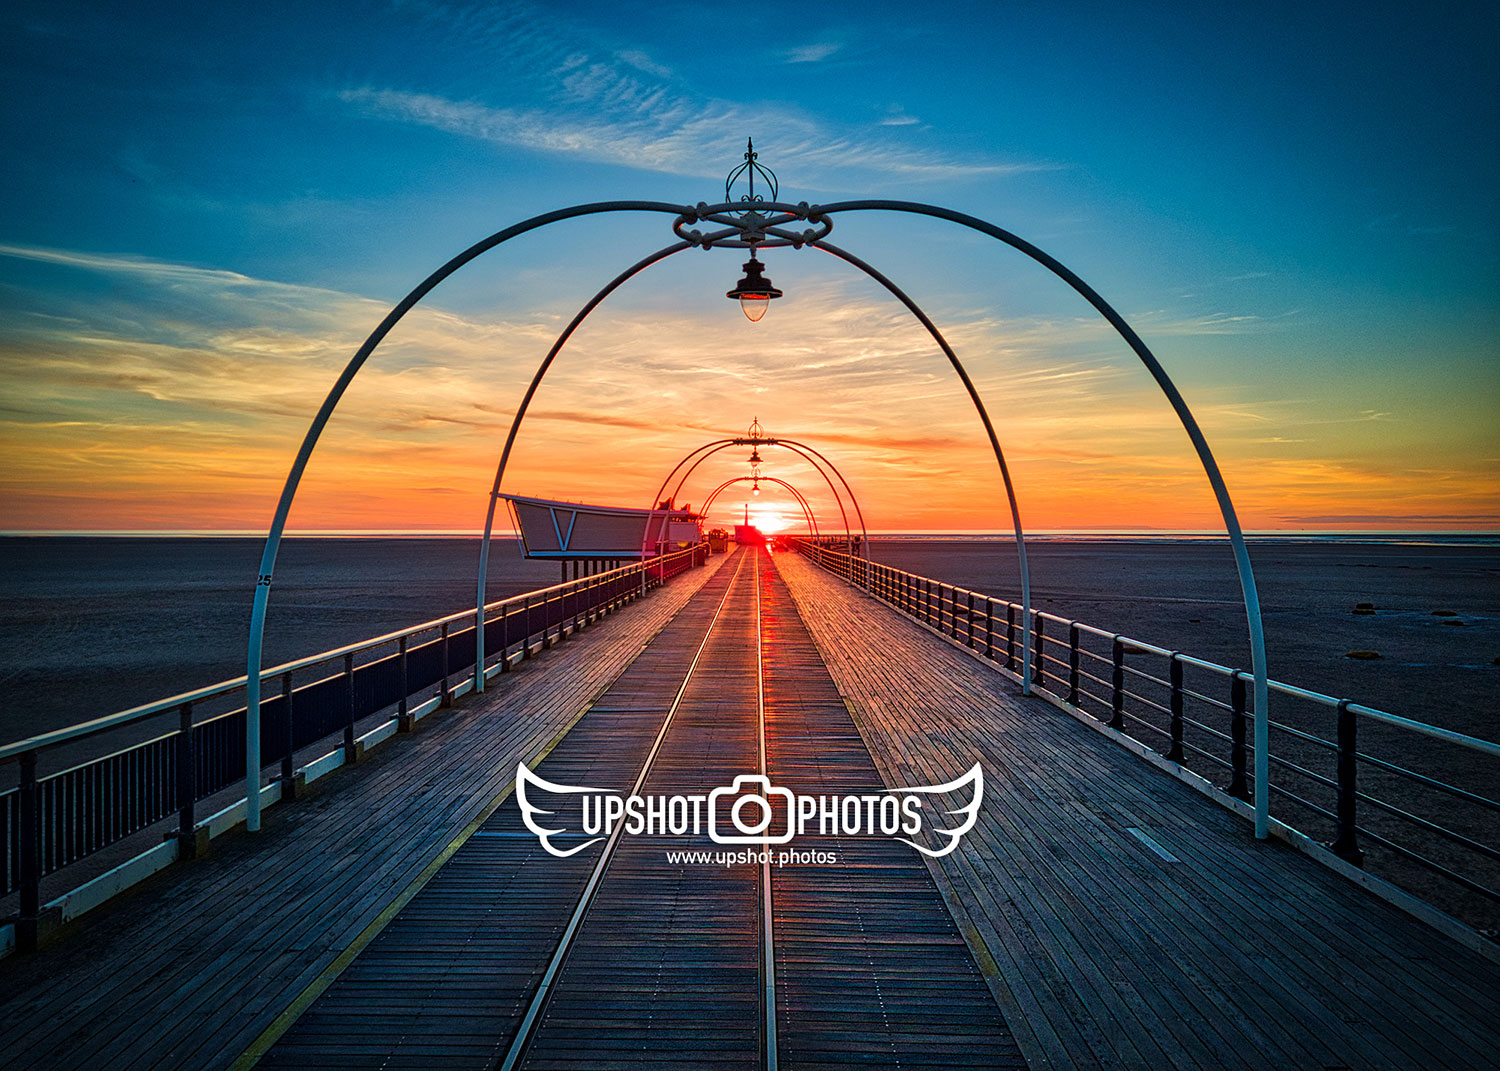 Aerial drone photography at Southport pier at sunset by Upshot Photos